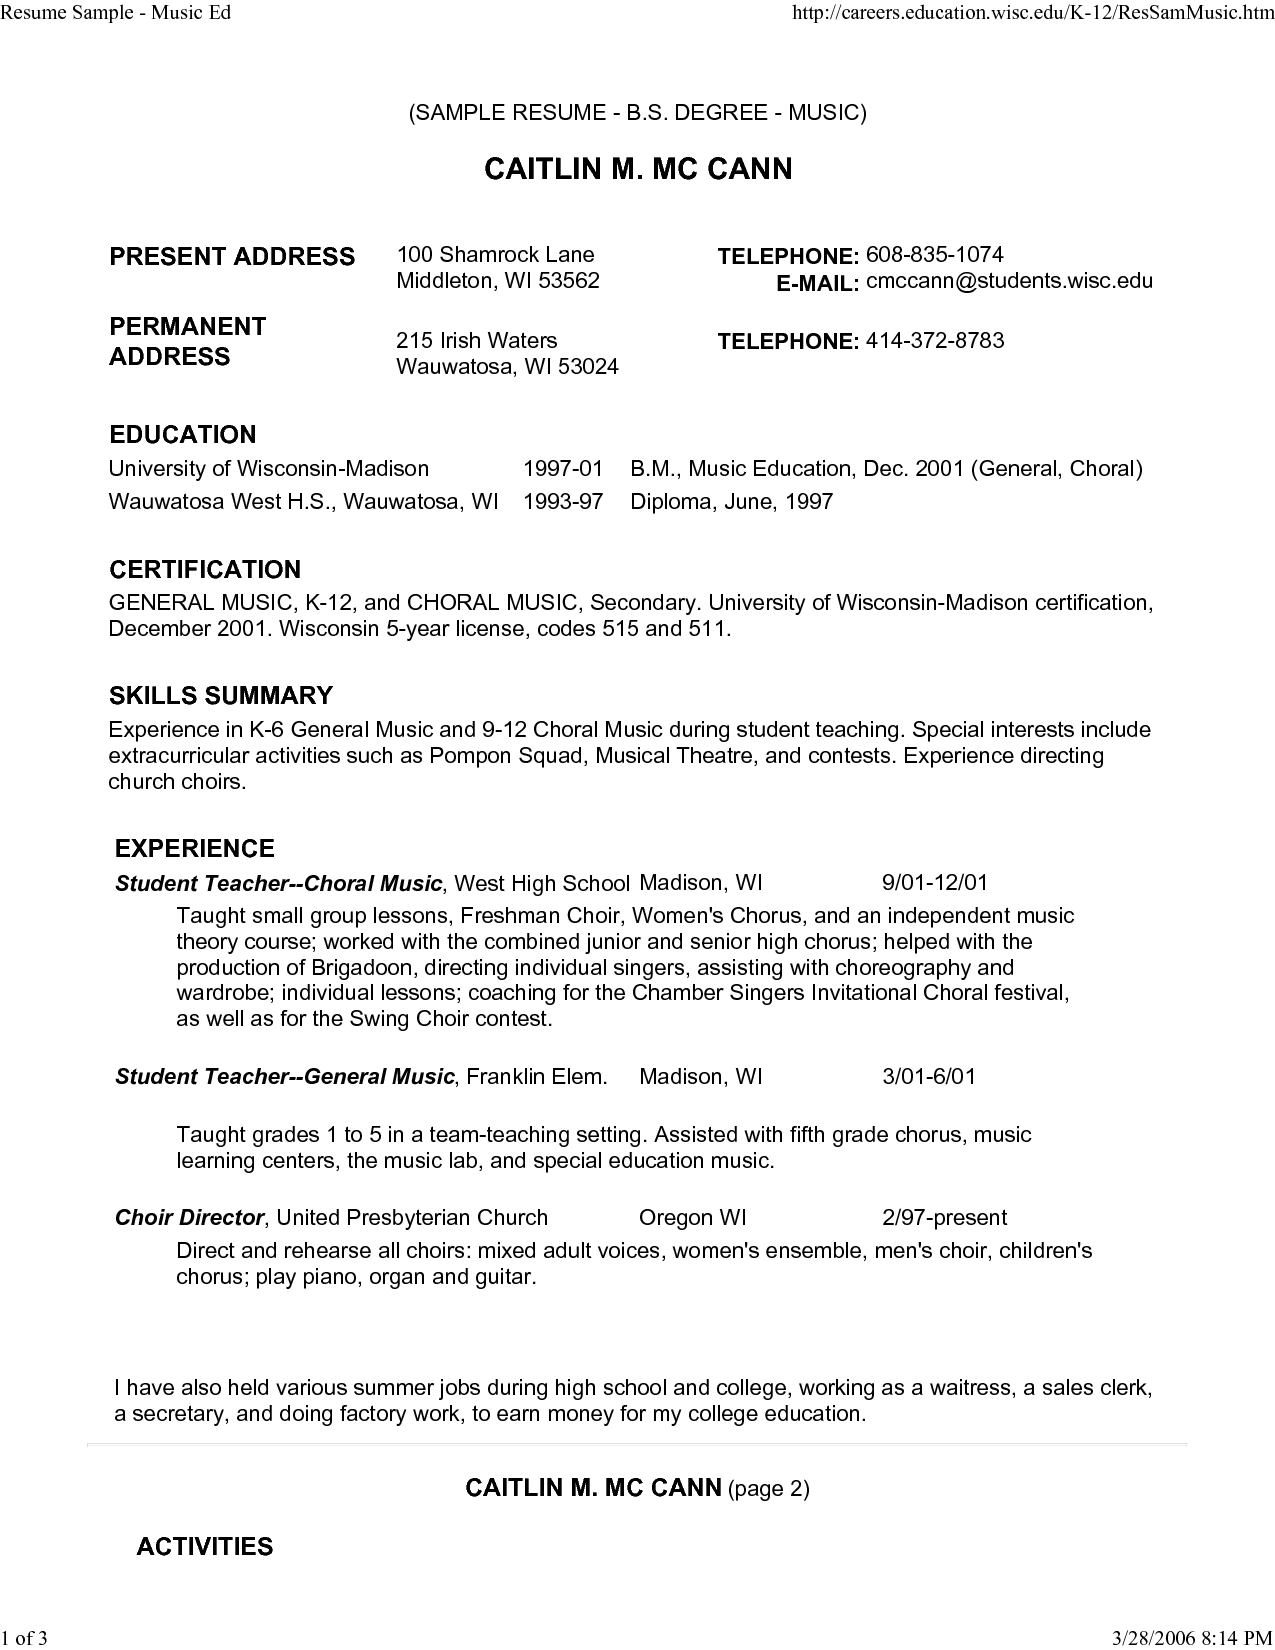 Teacher Resume Templates Free Sample Example Format Genius